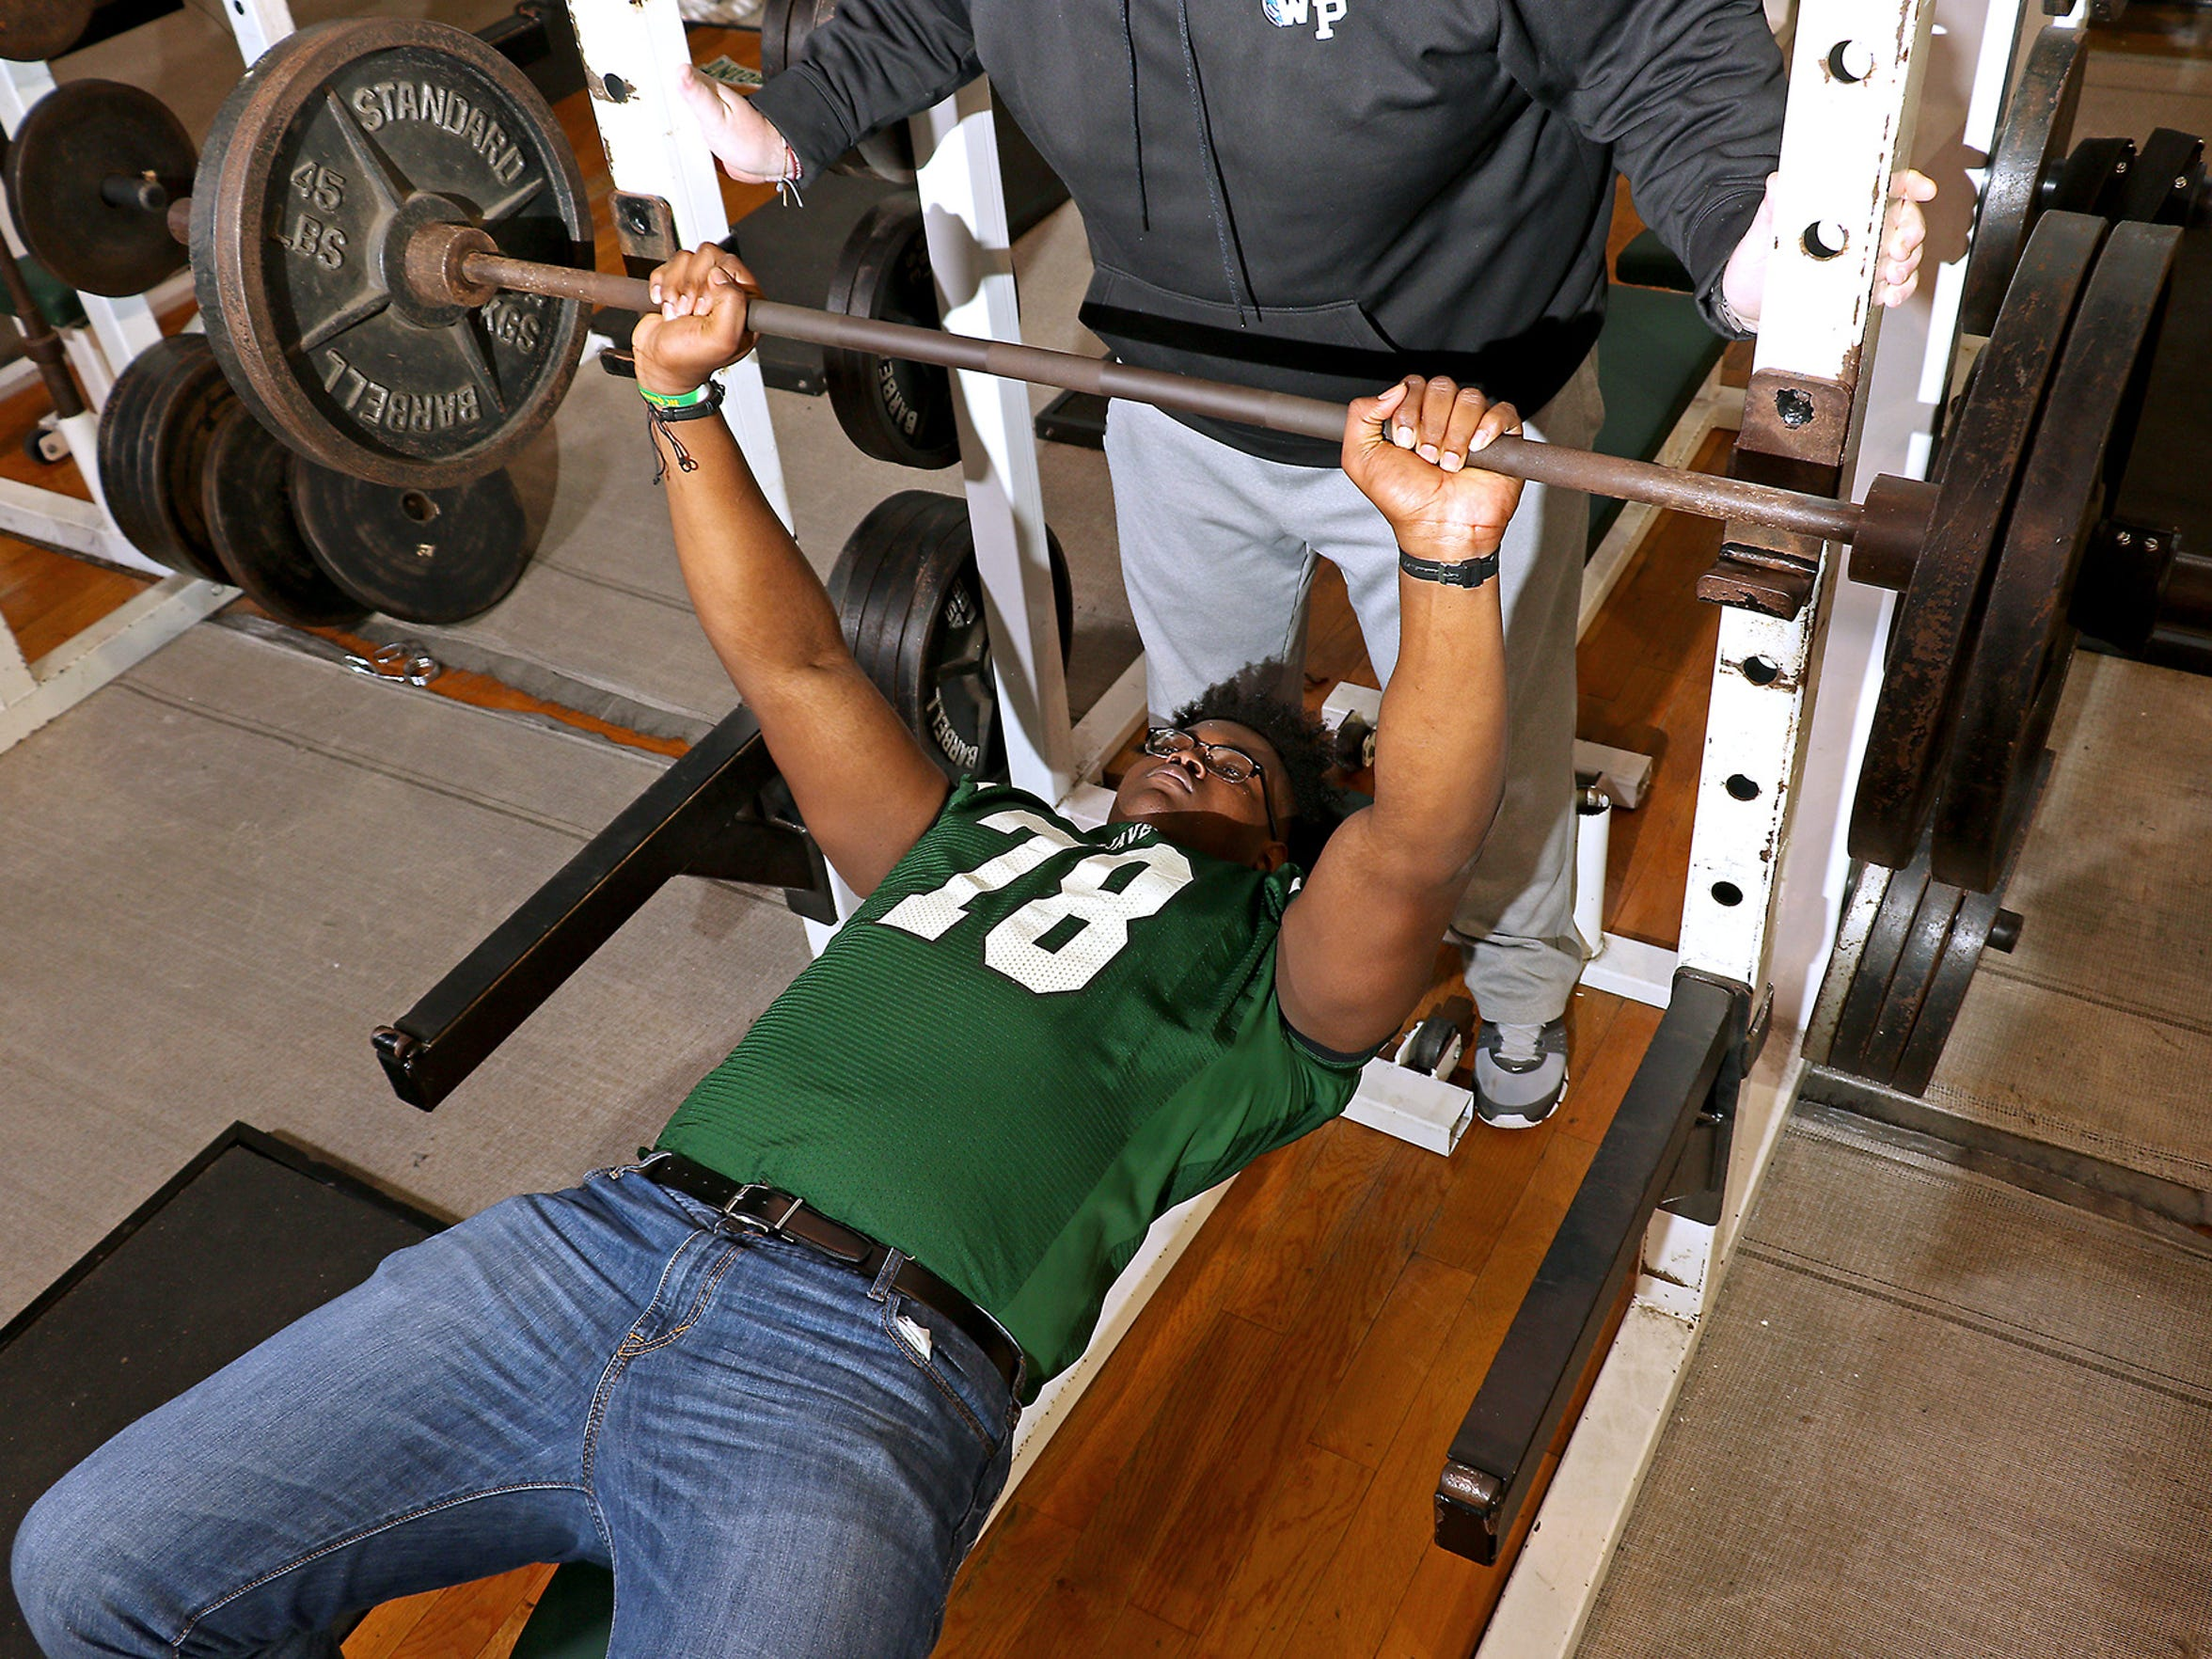 At 6-foot-7, 310 pounds, Lashley's West Point coaches